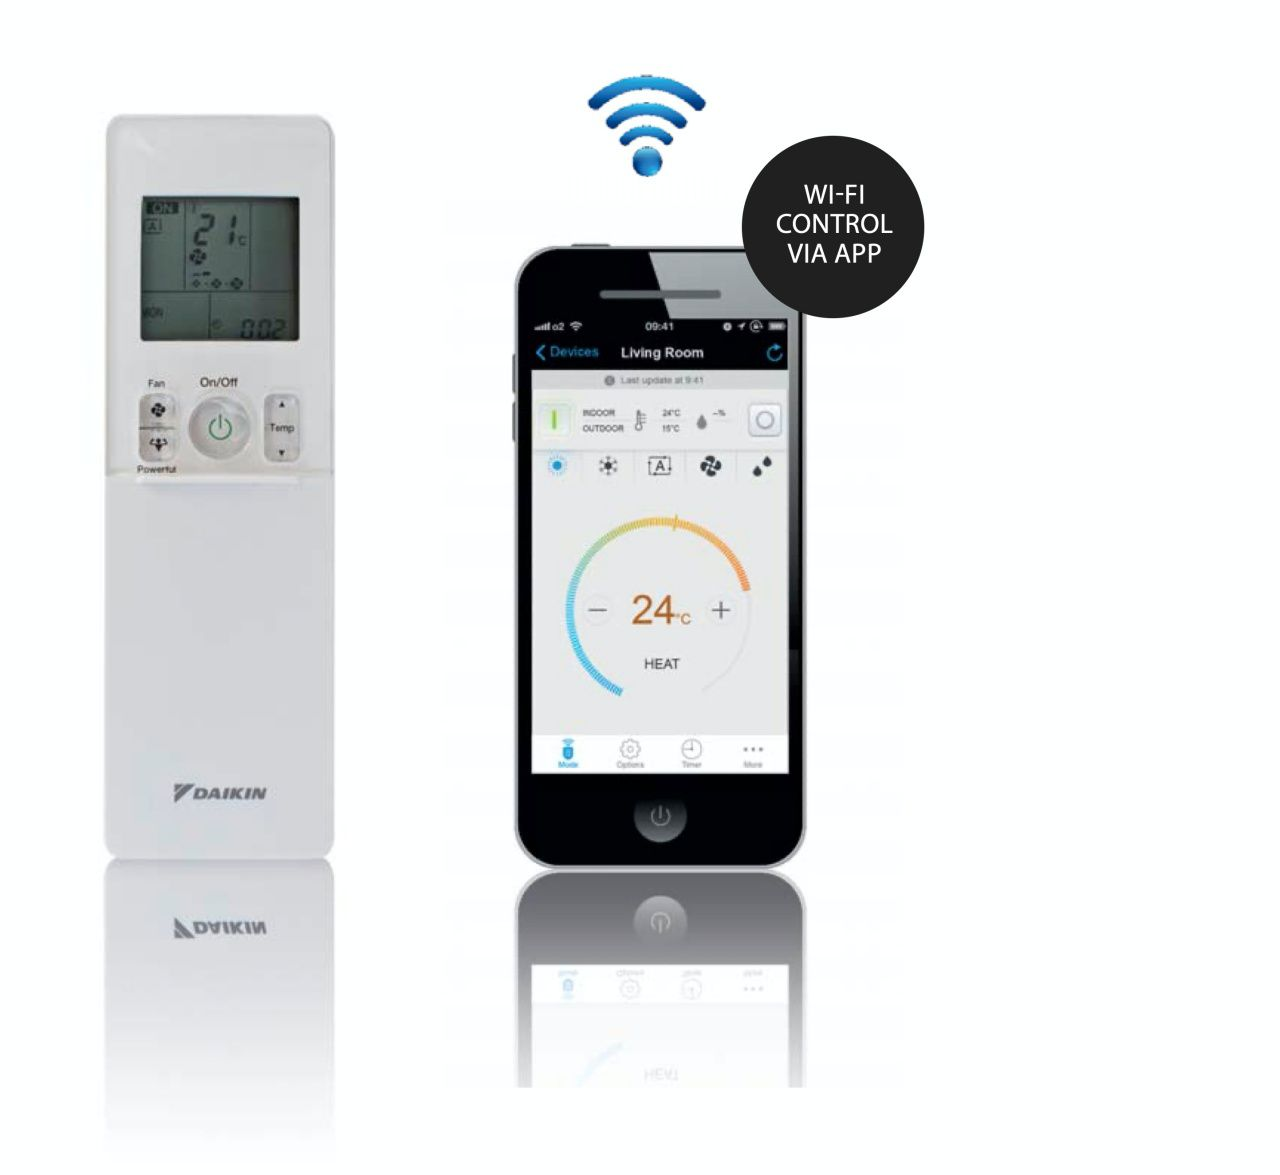 SMART WI-FI CONTROL/ SMART ENERGY SAVING WI-FI CONTROL VIA APP Theplug-and-playextrawi-fidevice allowsyoutosetandevenschedulethetemperature from anywhere, using the Apple or Android app. So you can manage the unit from any location, ensuring optimal climate control and energy efficiency.